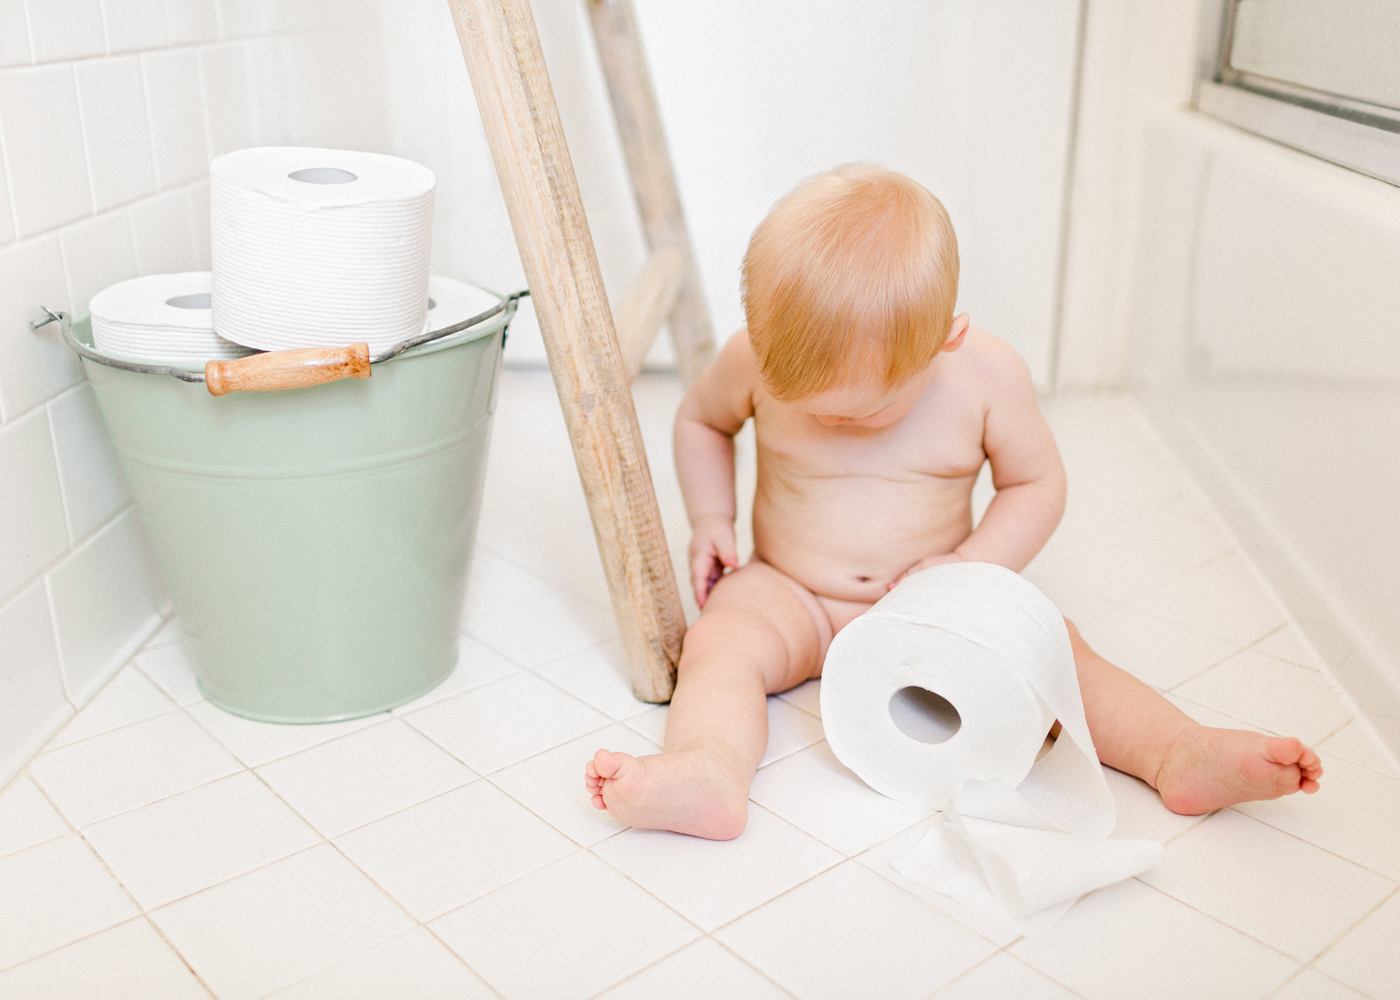 baby-boy-plays-with-toilet-paper-in-bathroom